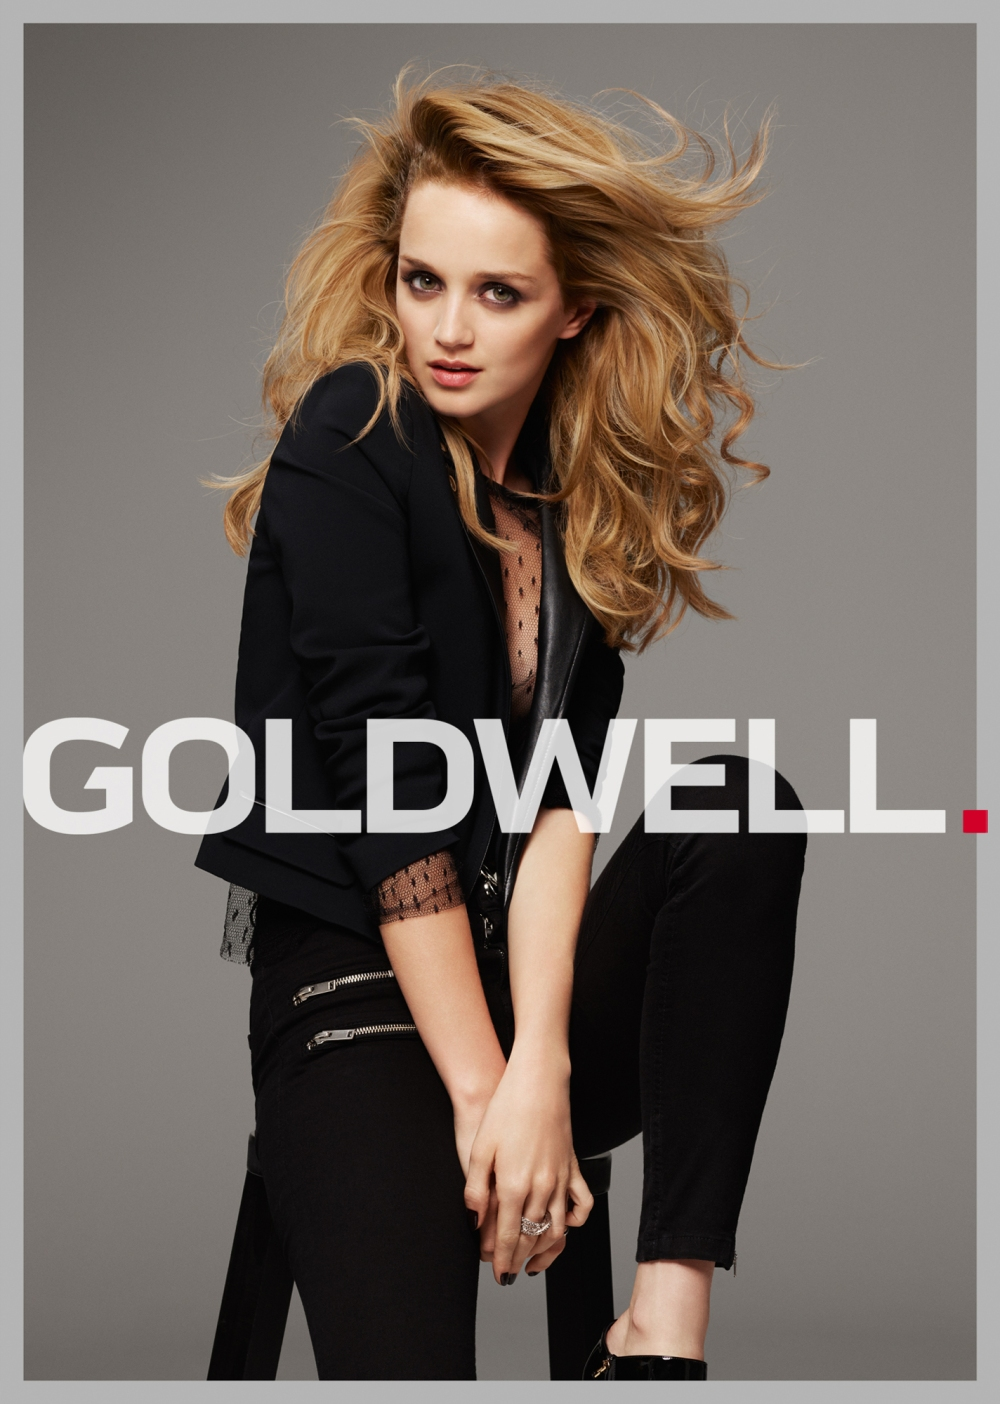 goldwell-by-ralph-mecke-6